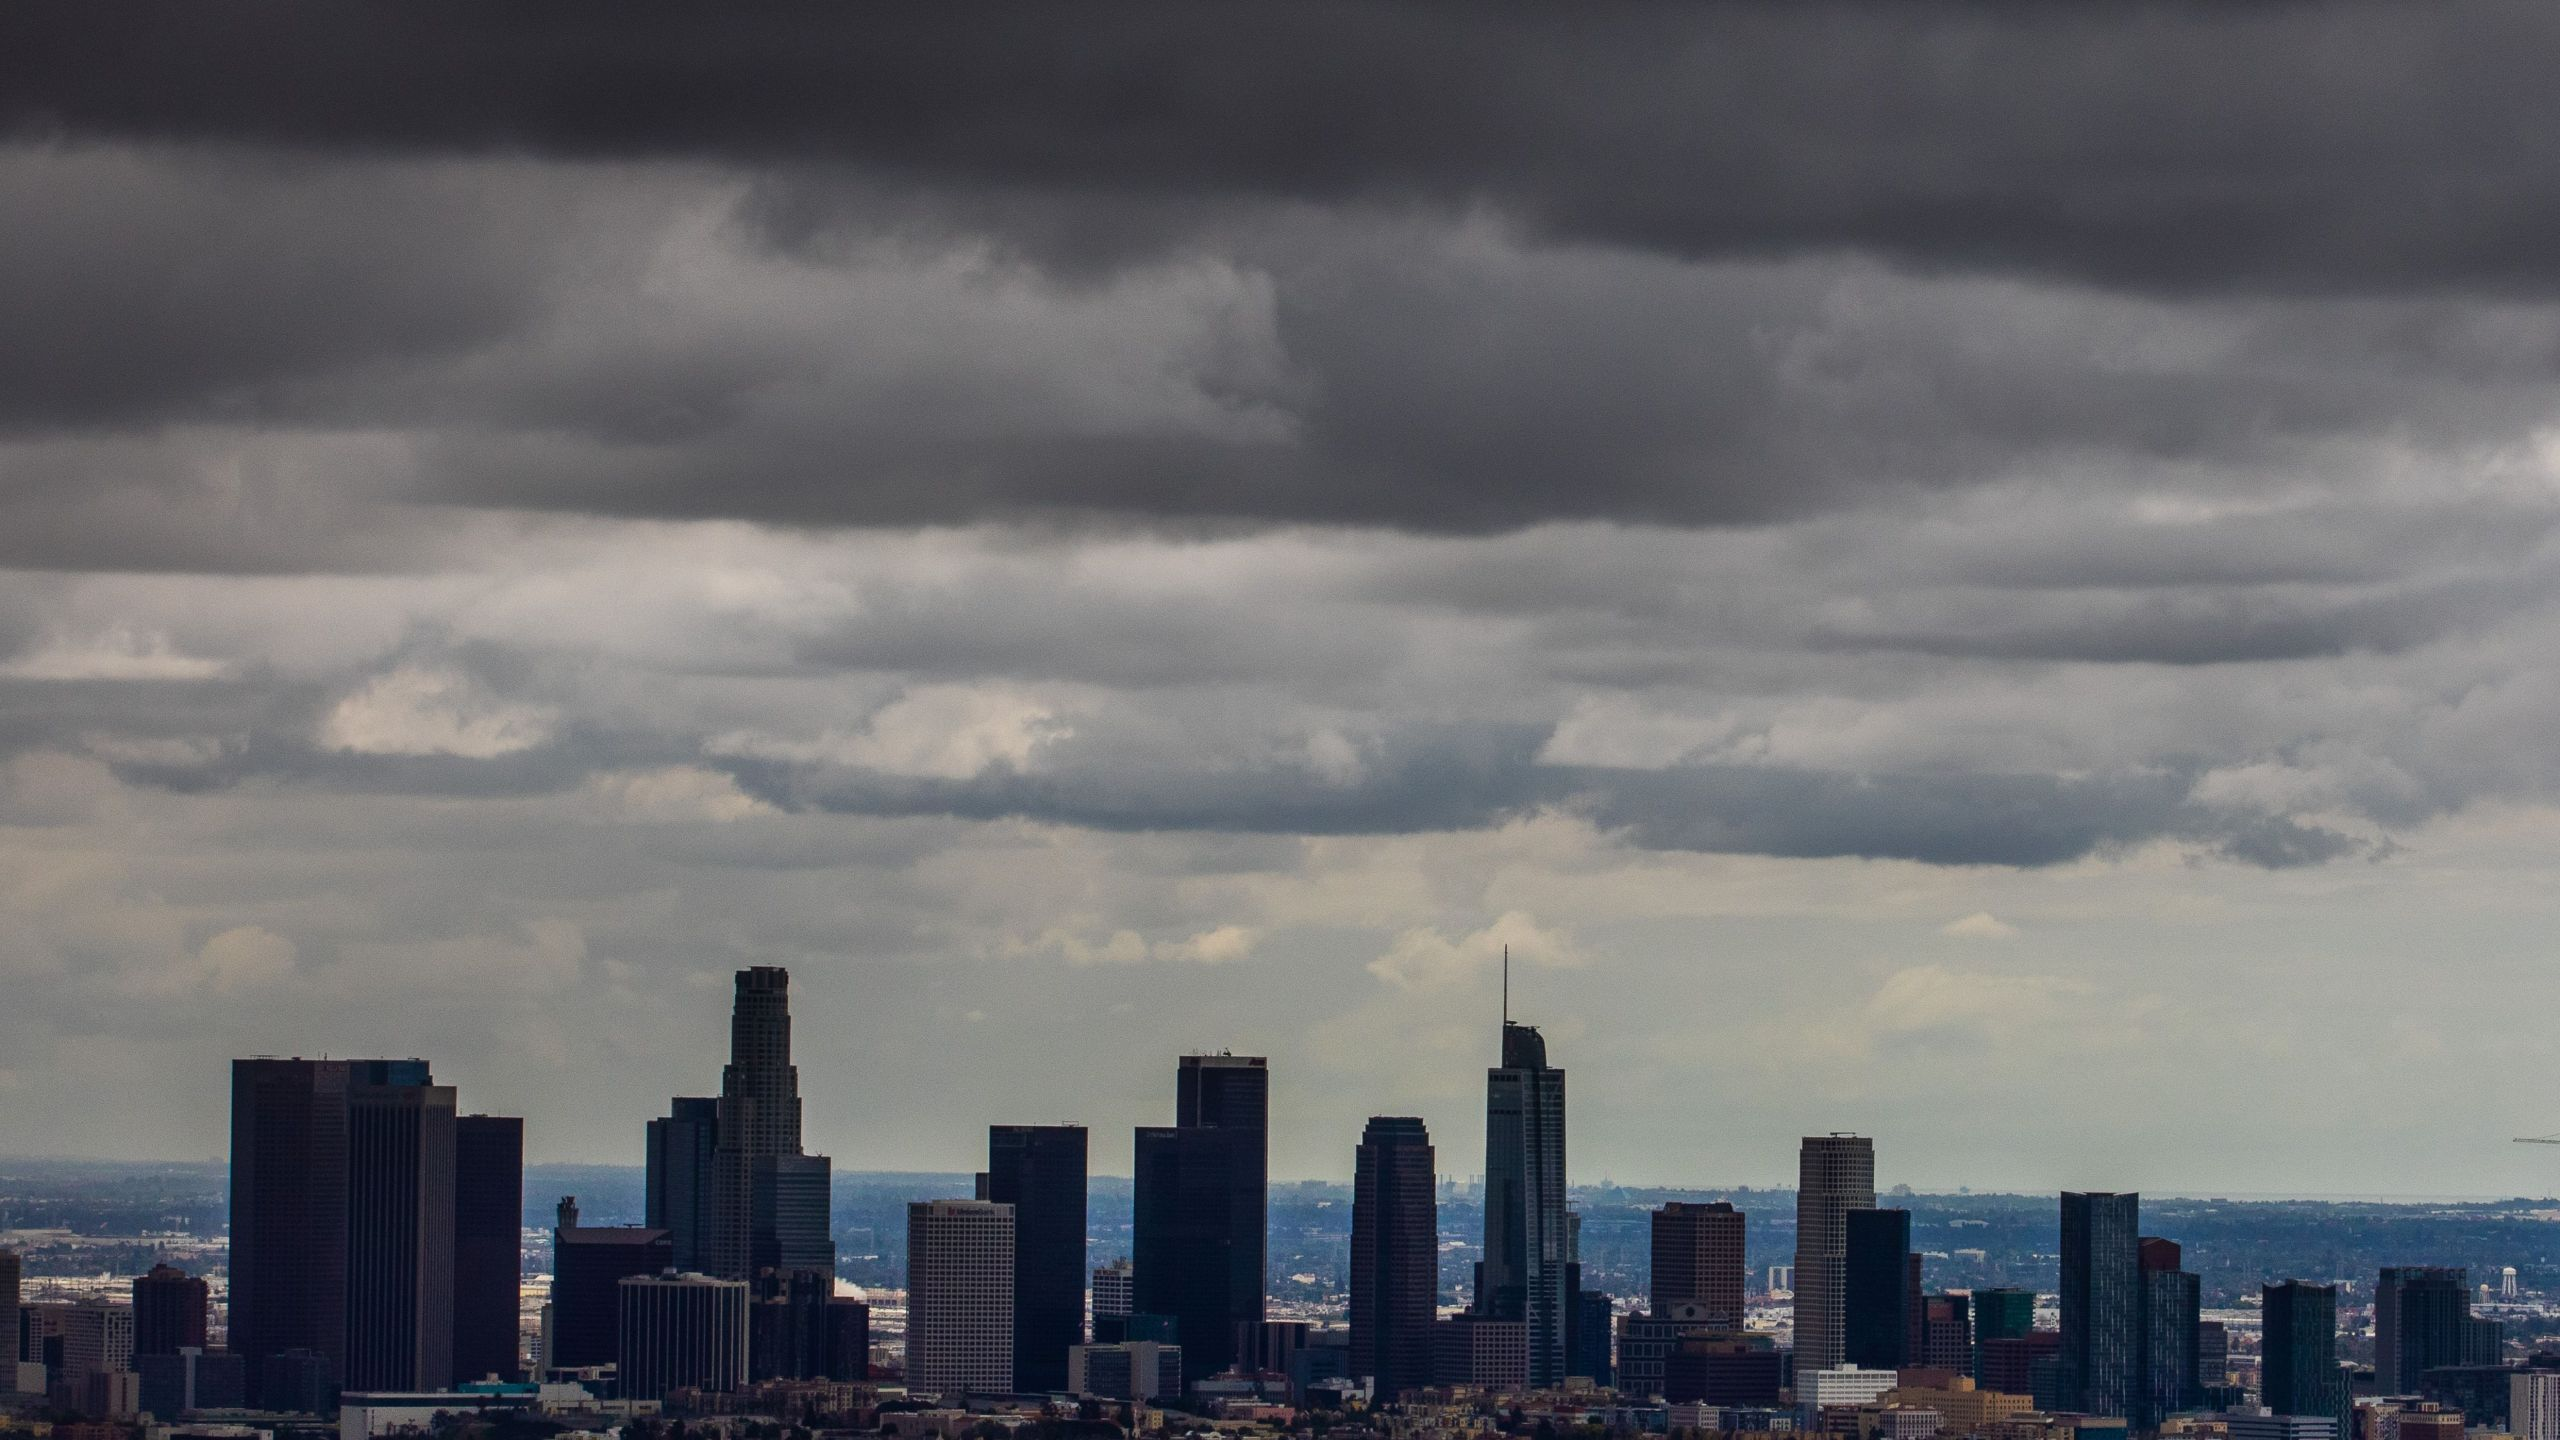 Heavy clouds are seen over downtown Los Angeles skyline from Griffth park on April 5, 2020 in Los Angeles, California. (APU GOMES/AFP via Getty Images)